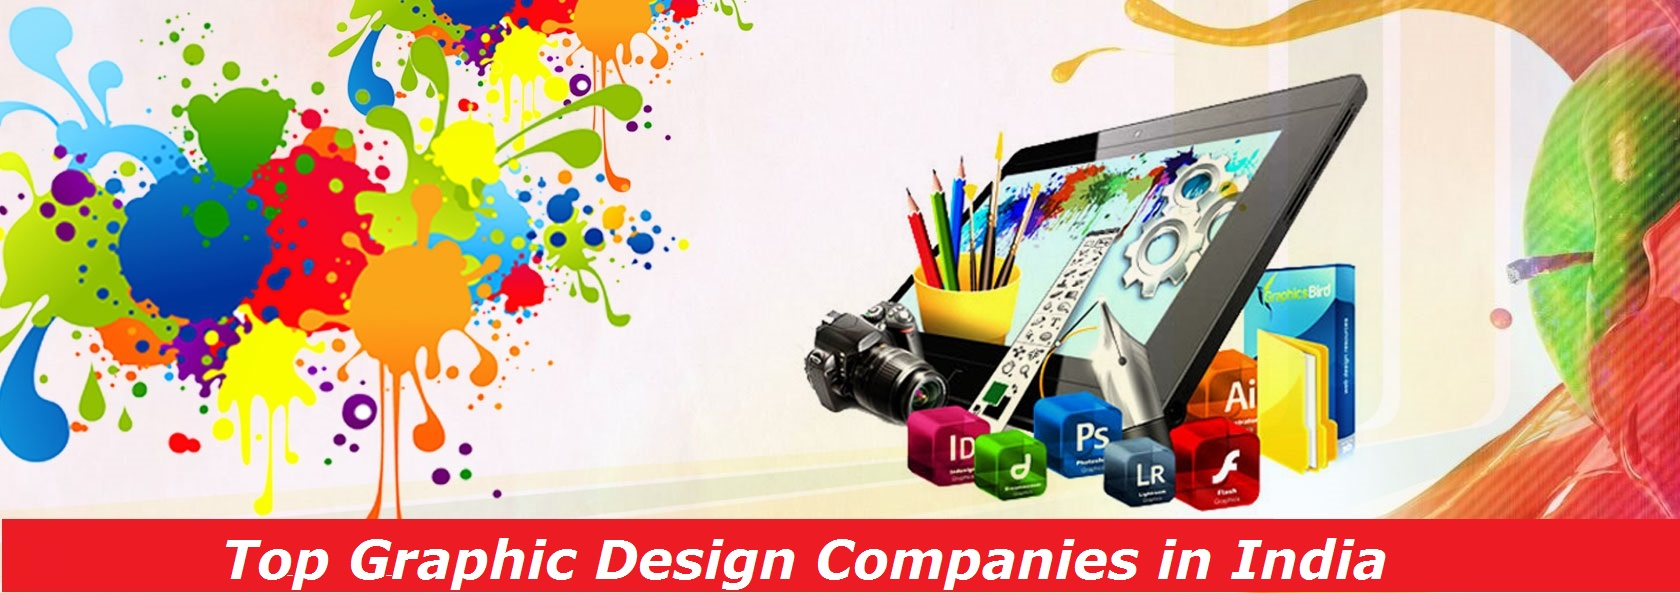 Top Graphic Design Companies in India